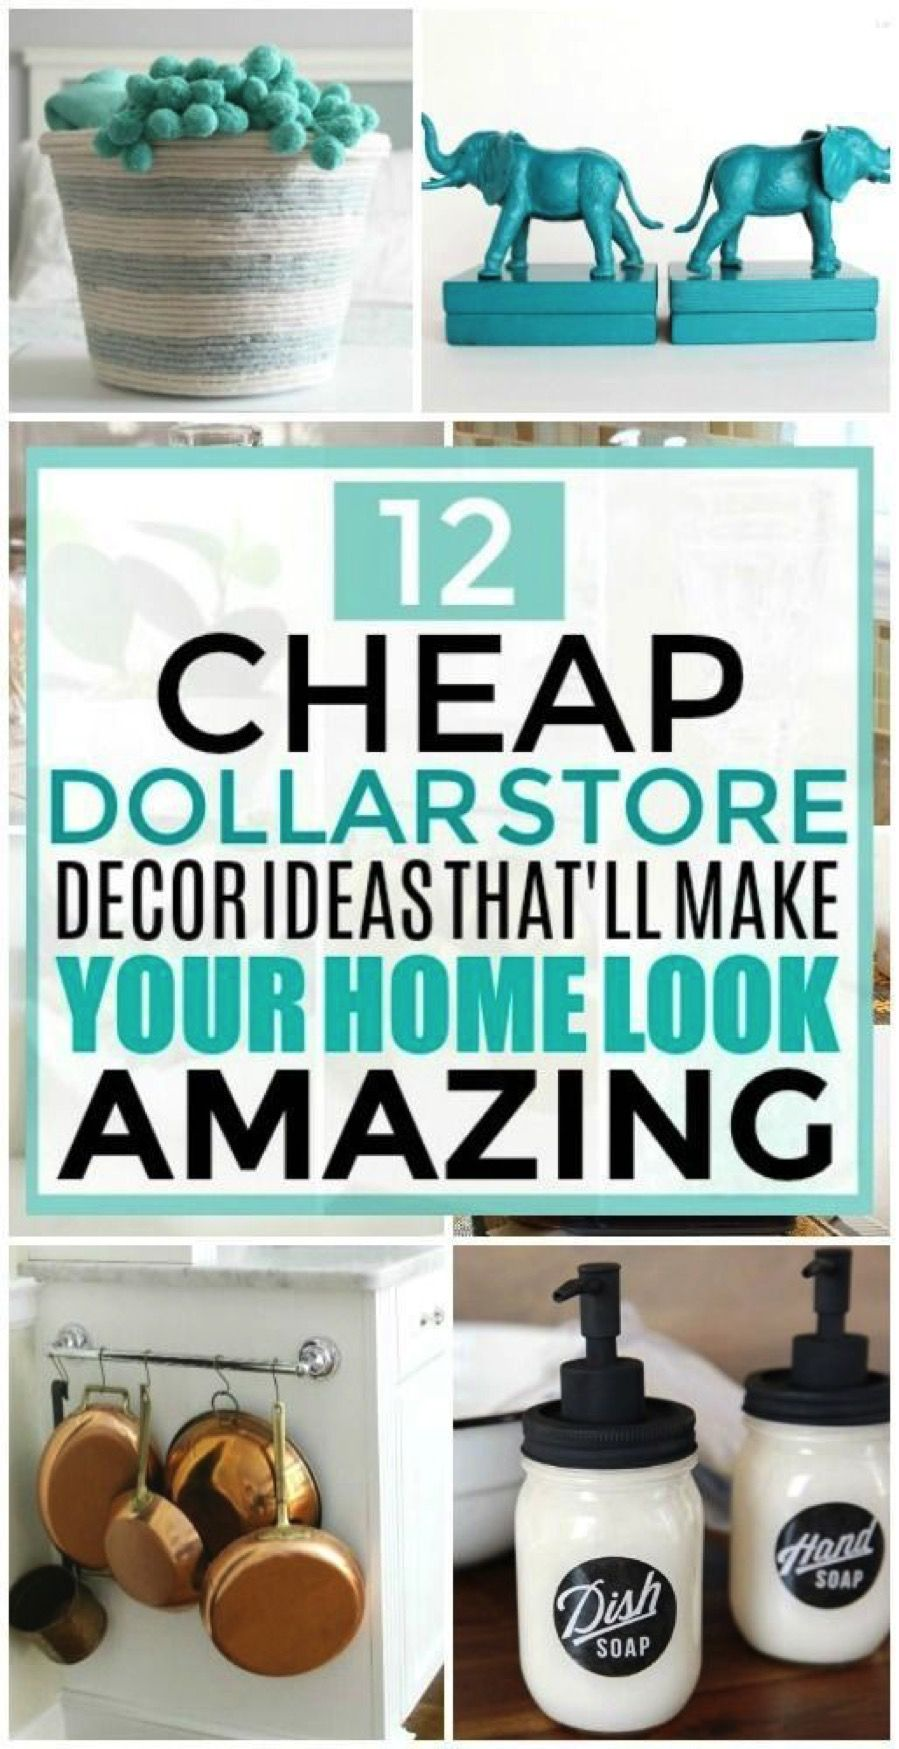 12 Cheap and Easy Dollar Store Decor Hacks That'll Make Your Home Look Amazing